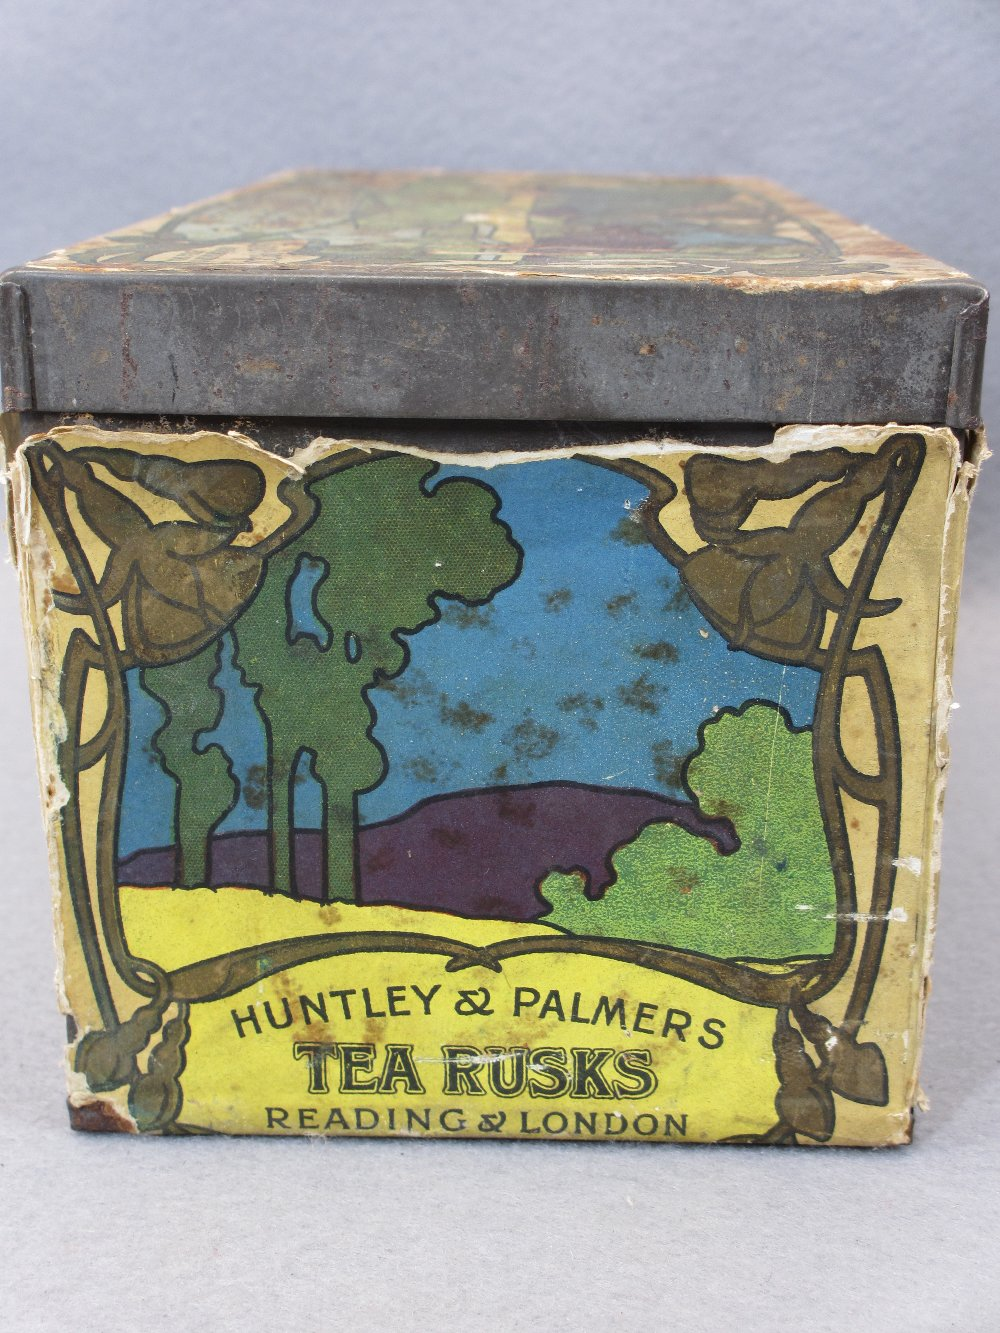 EP & OTHER CUTLERY - in a rare paper covered Huntley & Palmer's Tea Rusks tin, Art Nouveau style - Image 5 of 7